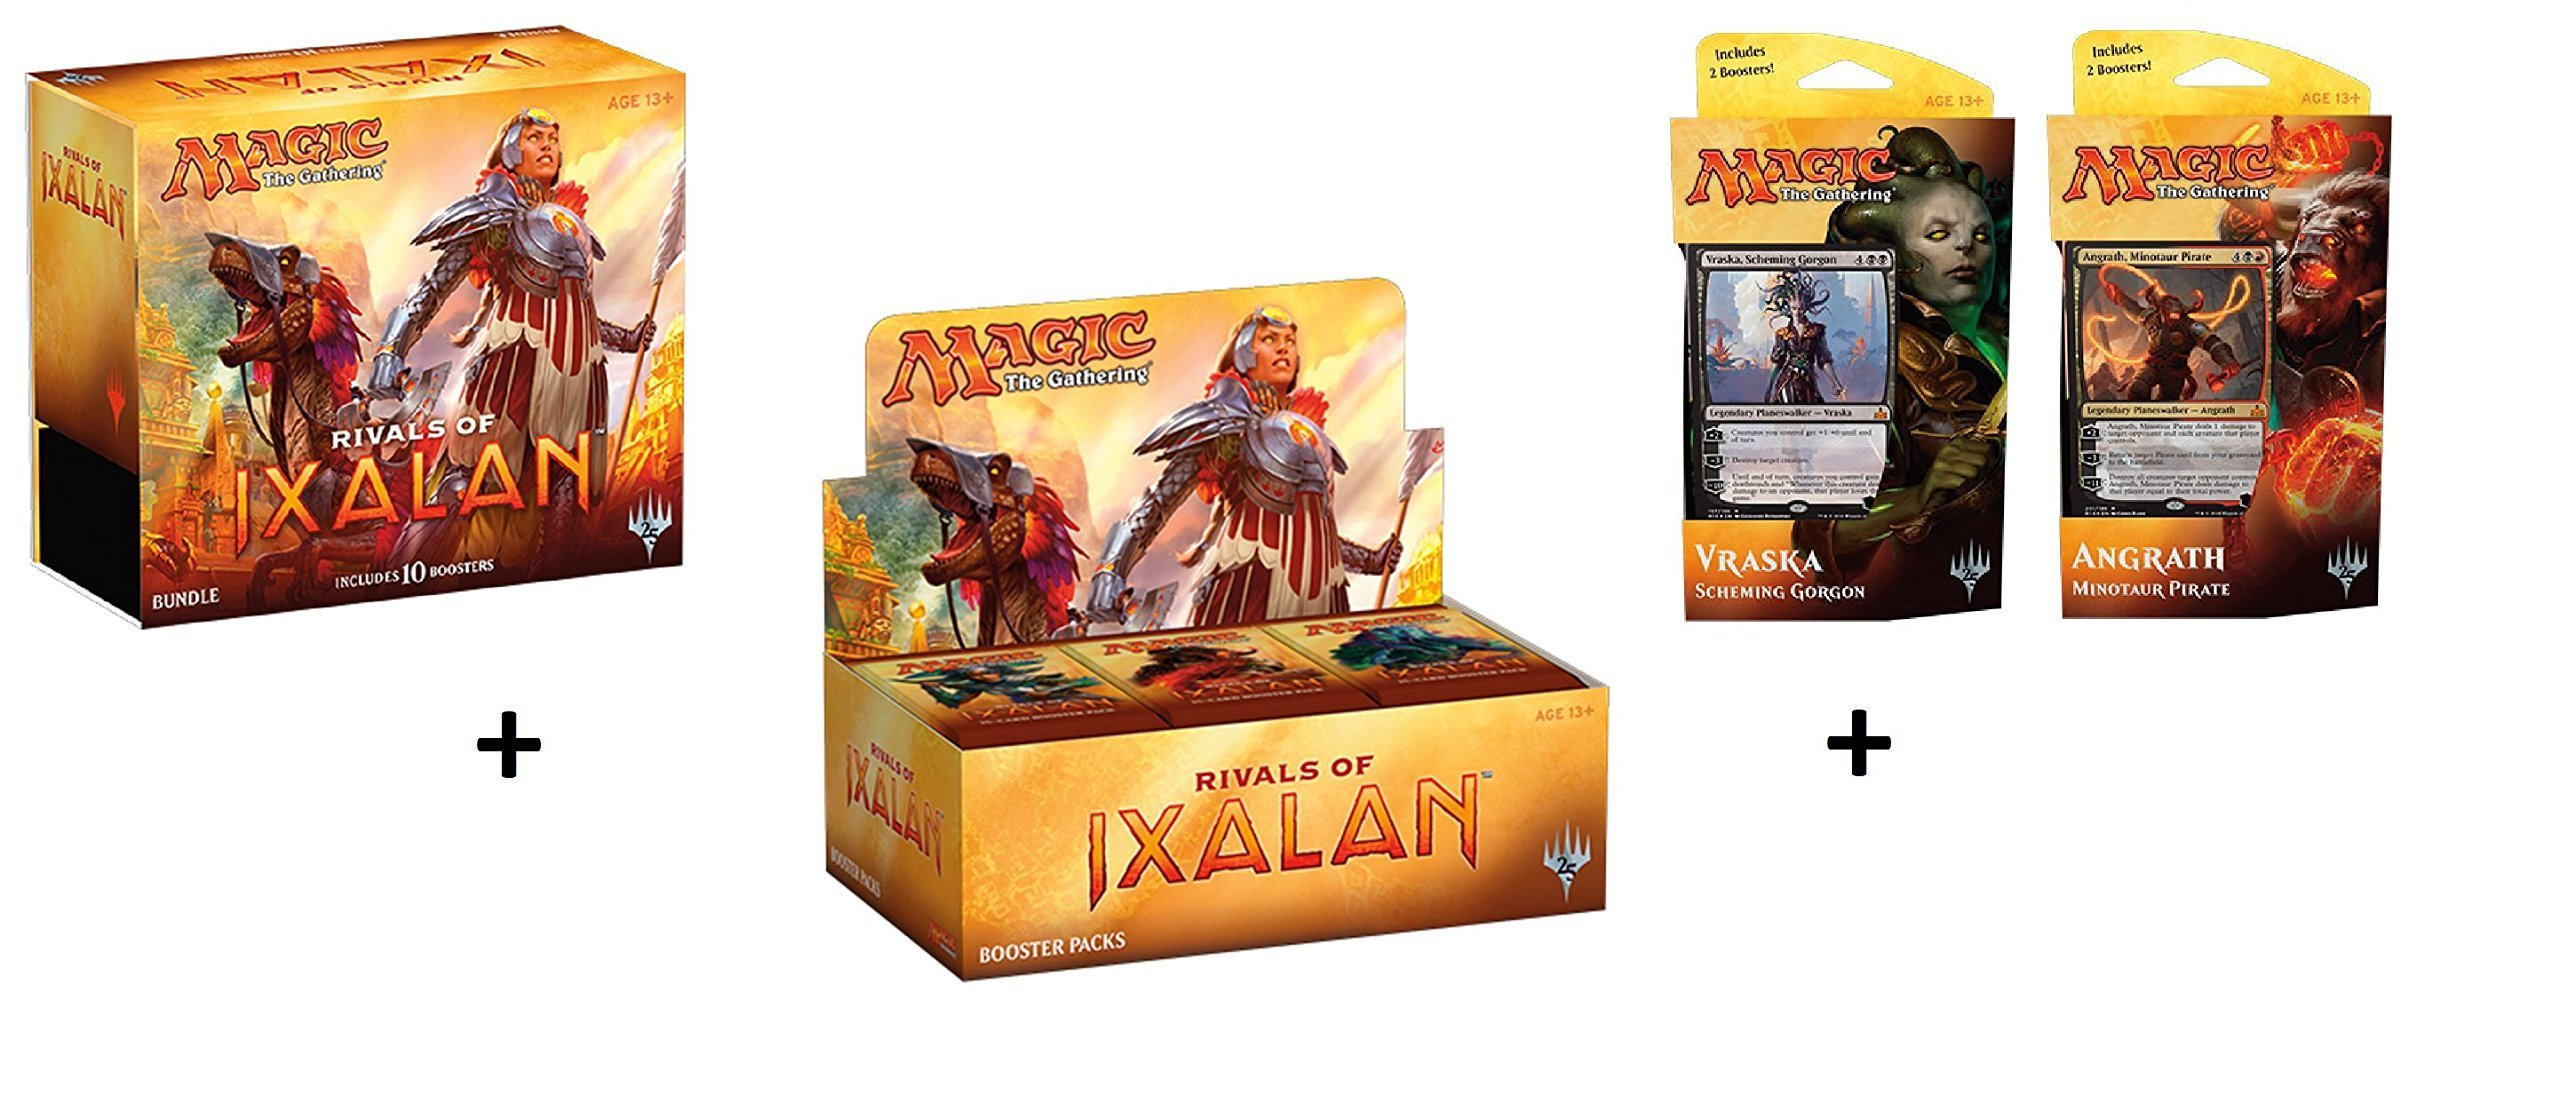 Magic the Gathering (MTG): Rivals of Ixalan Booster Box + Bundle (Fat Pack) + Both Planeswalker Decks! MTG Variety Pack Perfect for Collectors